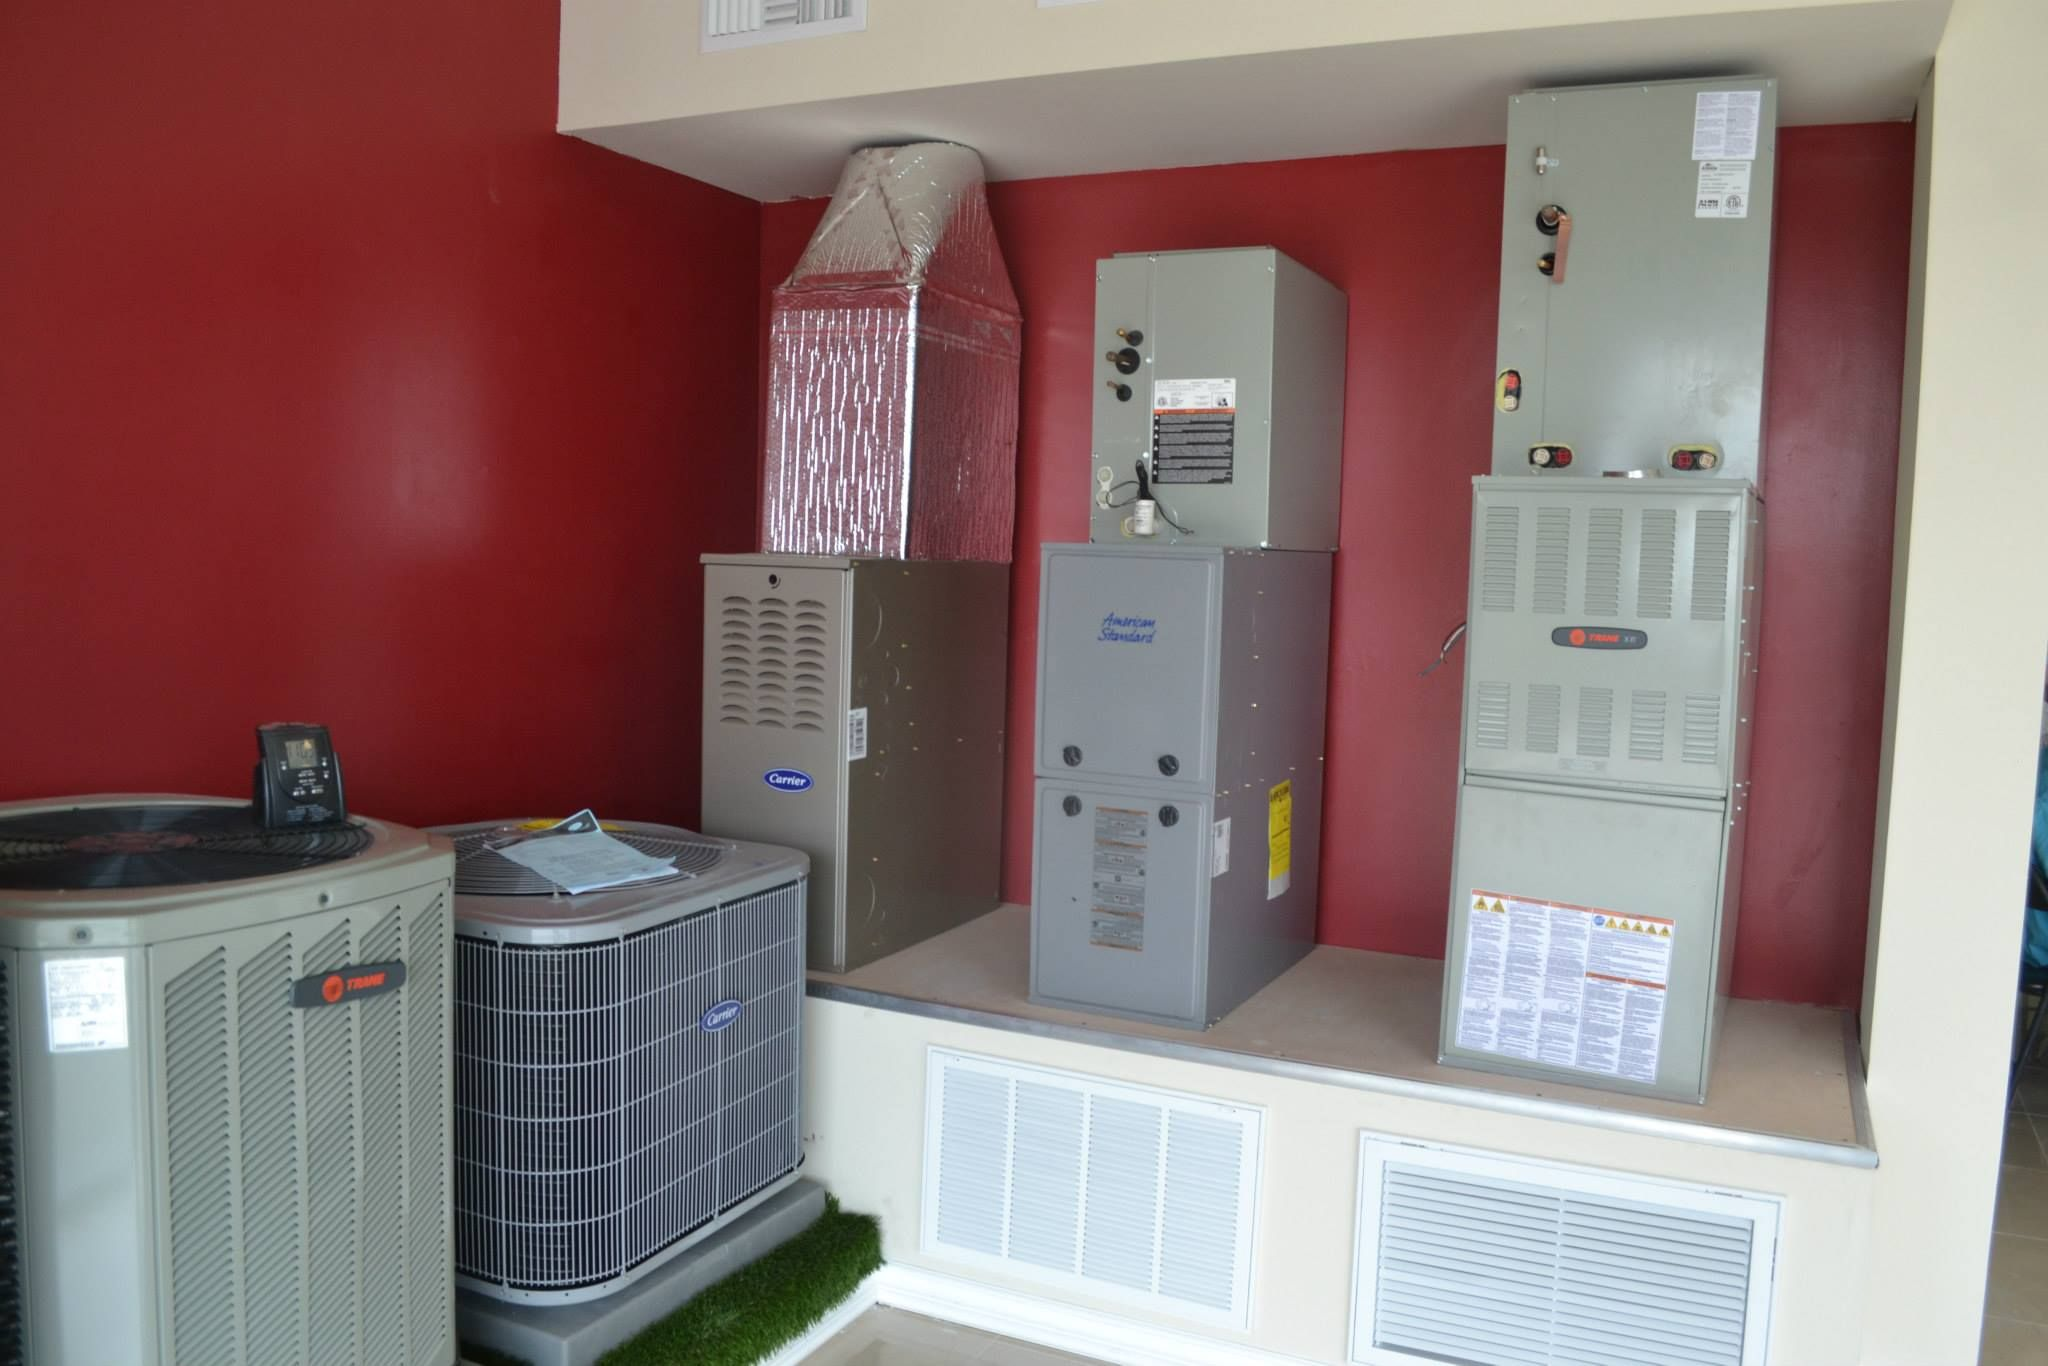 Ductless HVAC systems offer a solution for spaces not